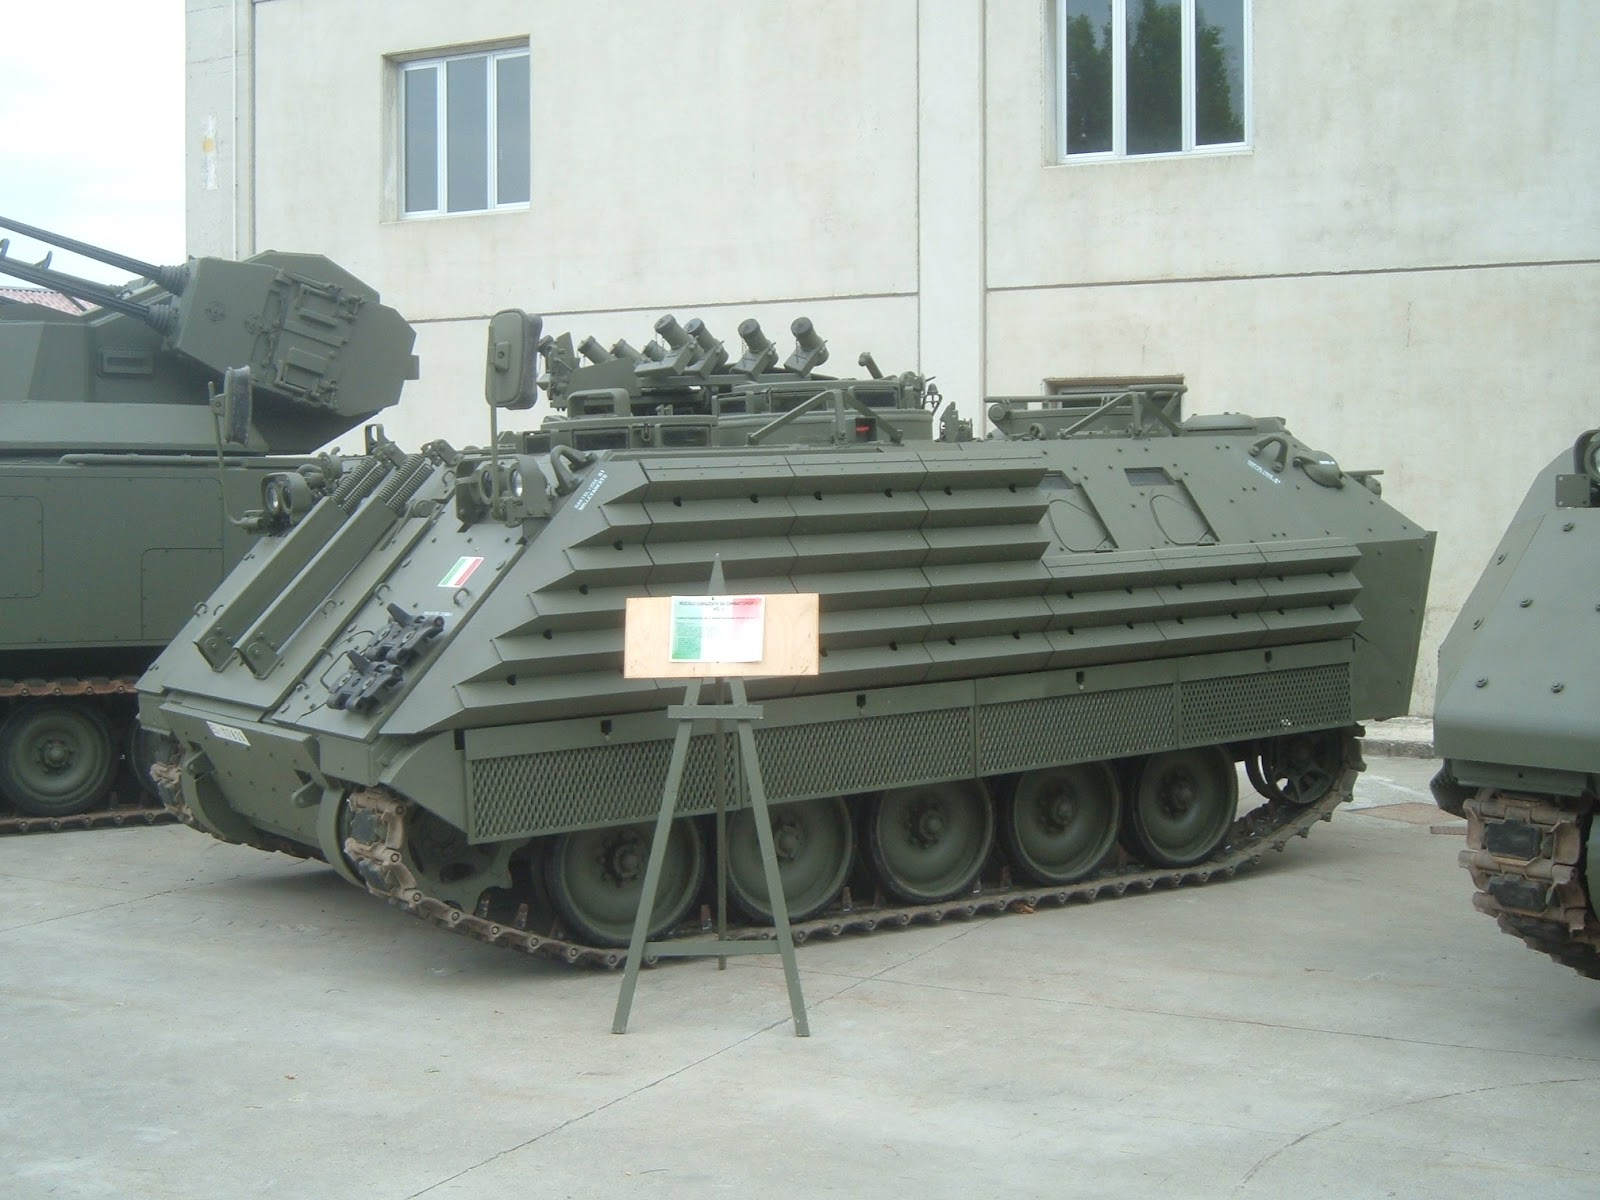 UK Armed Forces Commentary: Day of tanks!